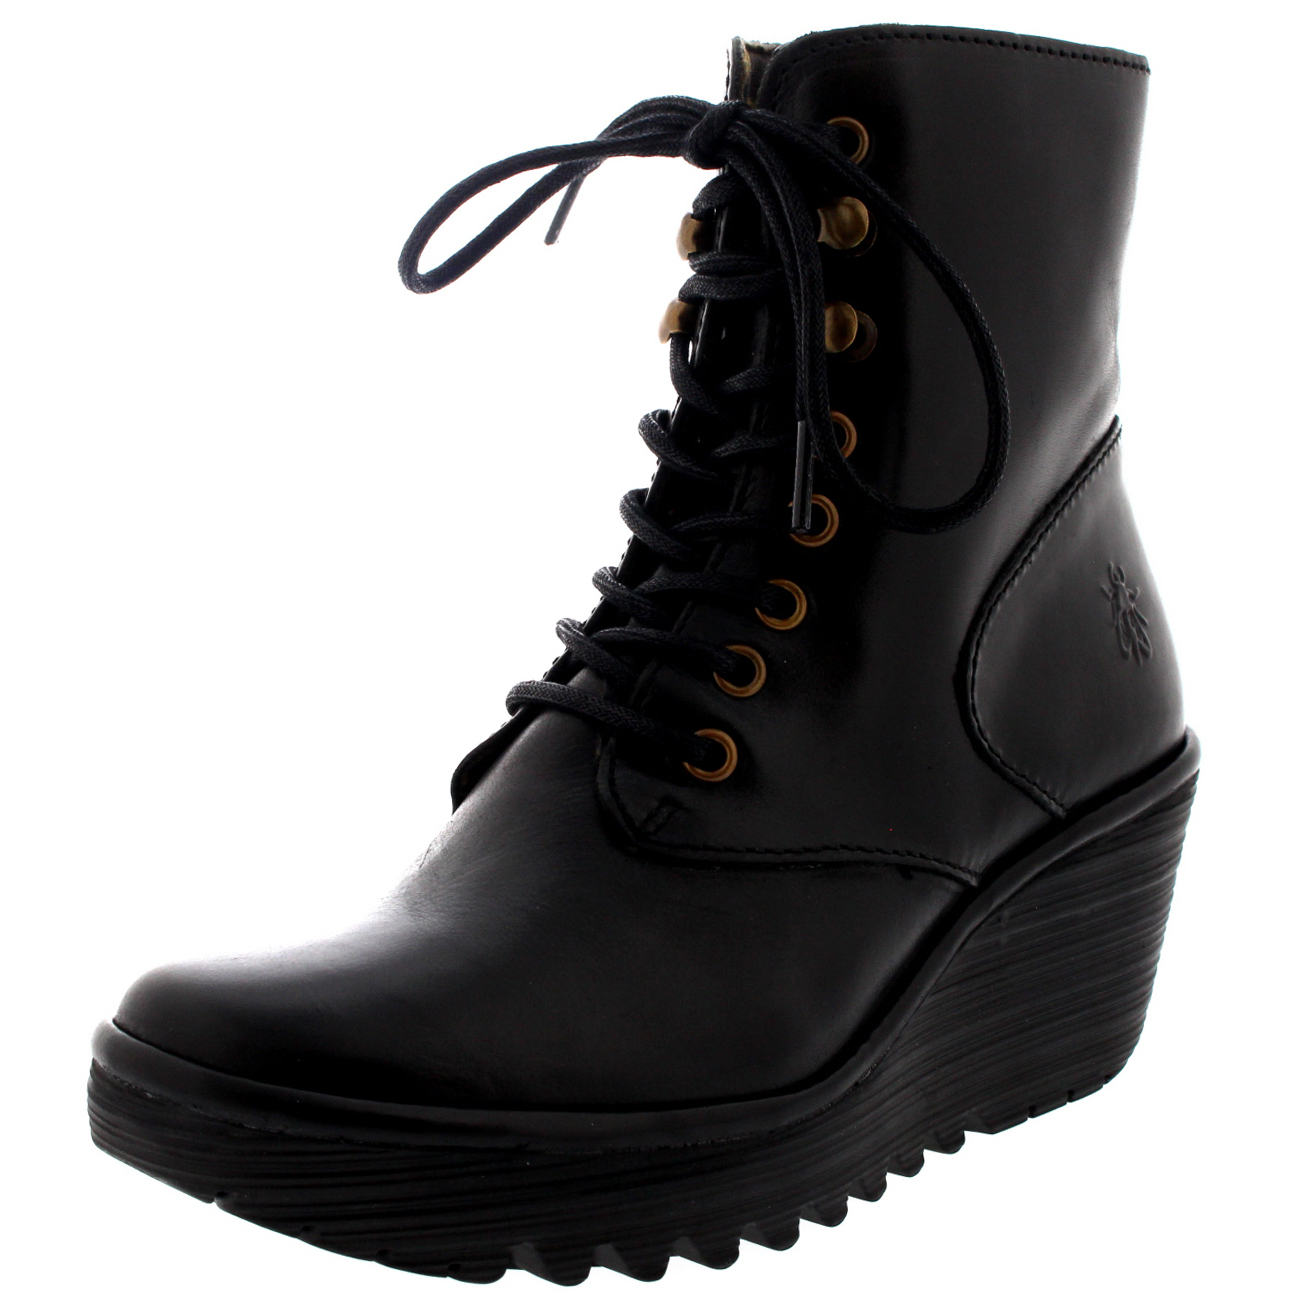 e9fe208c6060 Womens Fly London Ygot Rug Black Leather Winter Wedge Heel Ankle Boots US  5-12